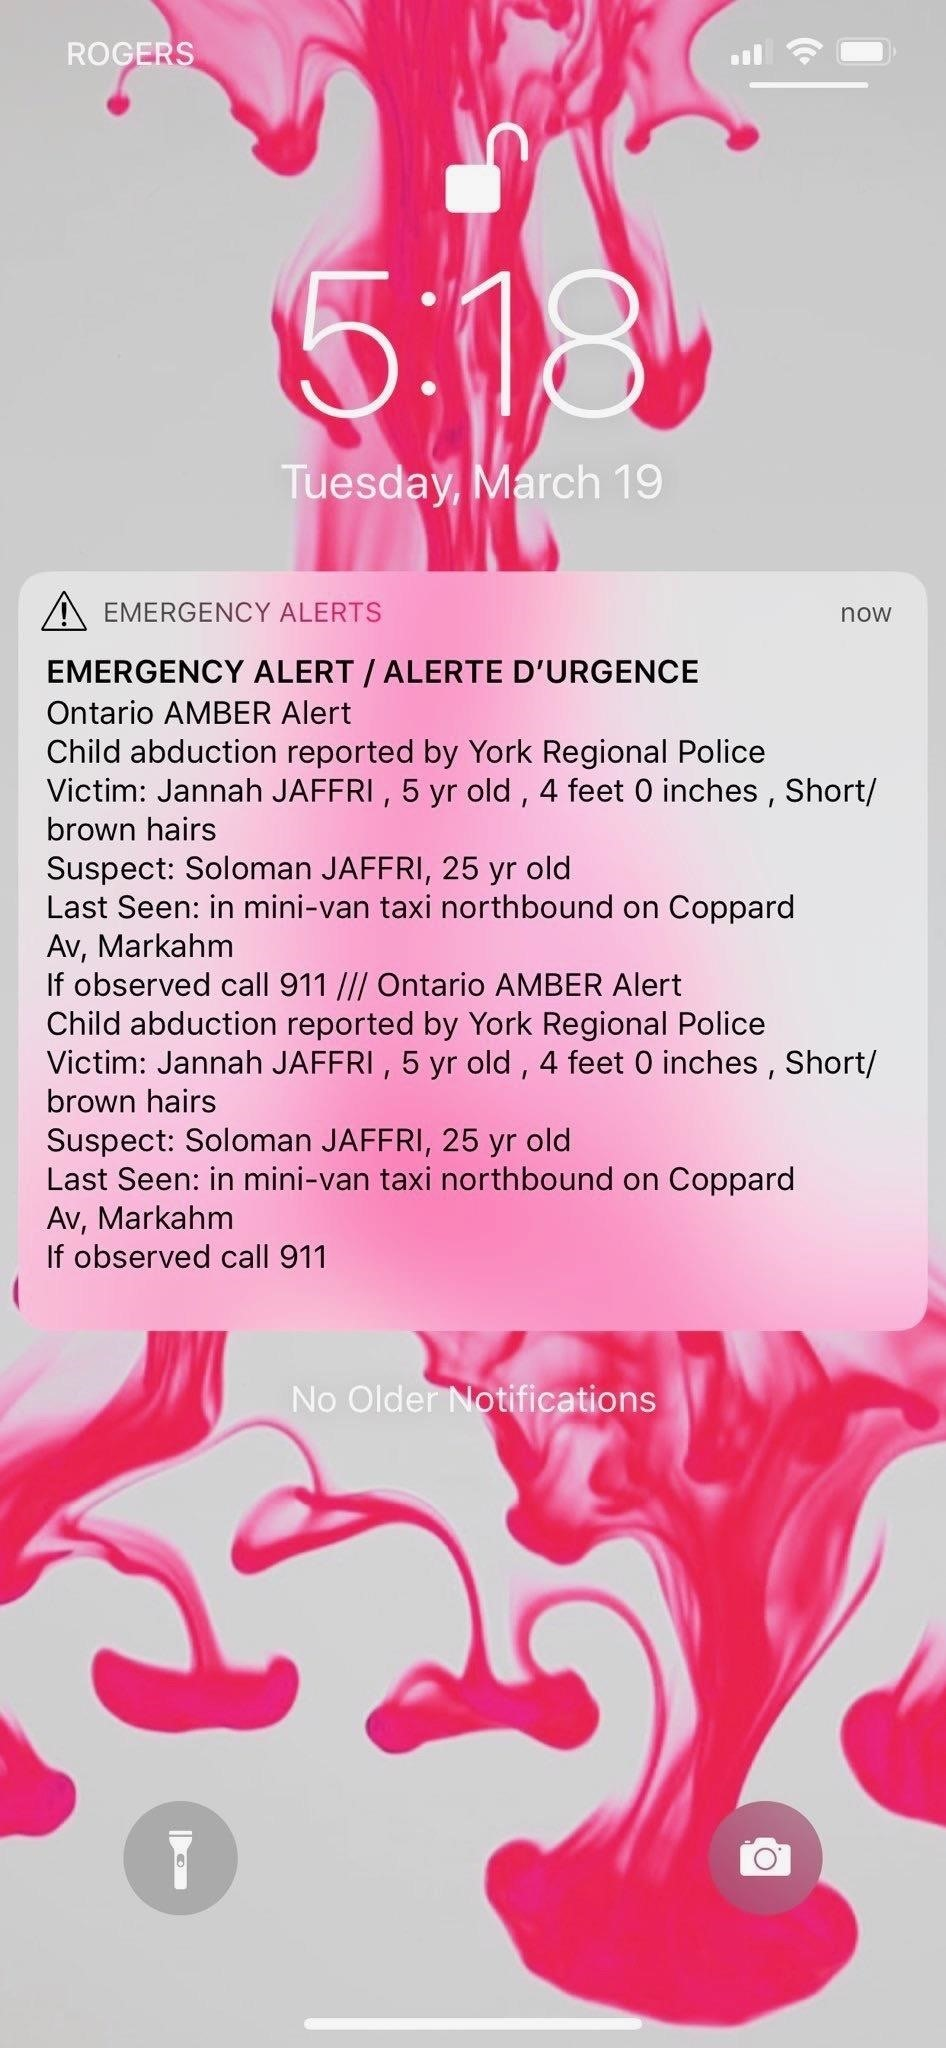 turn off amber alerts your iphone plus emergency public safety other government warnings.w1456